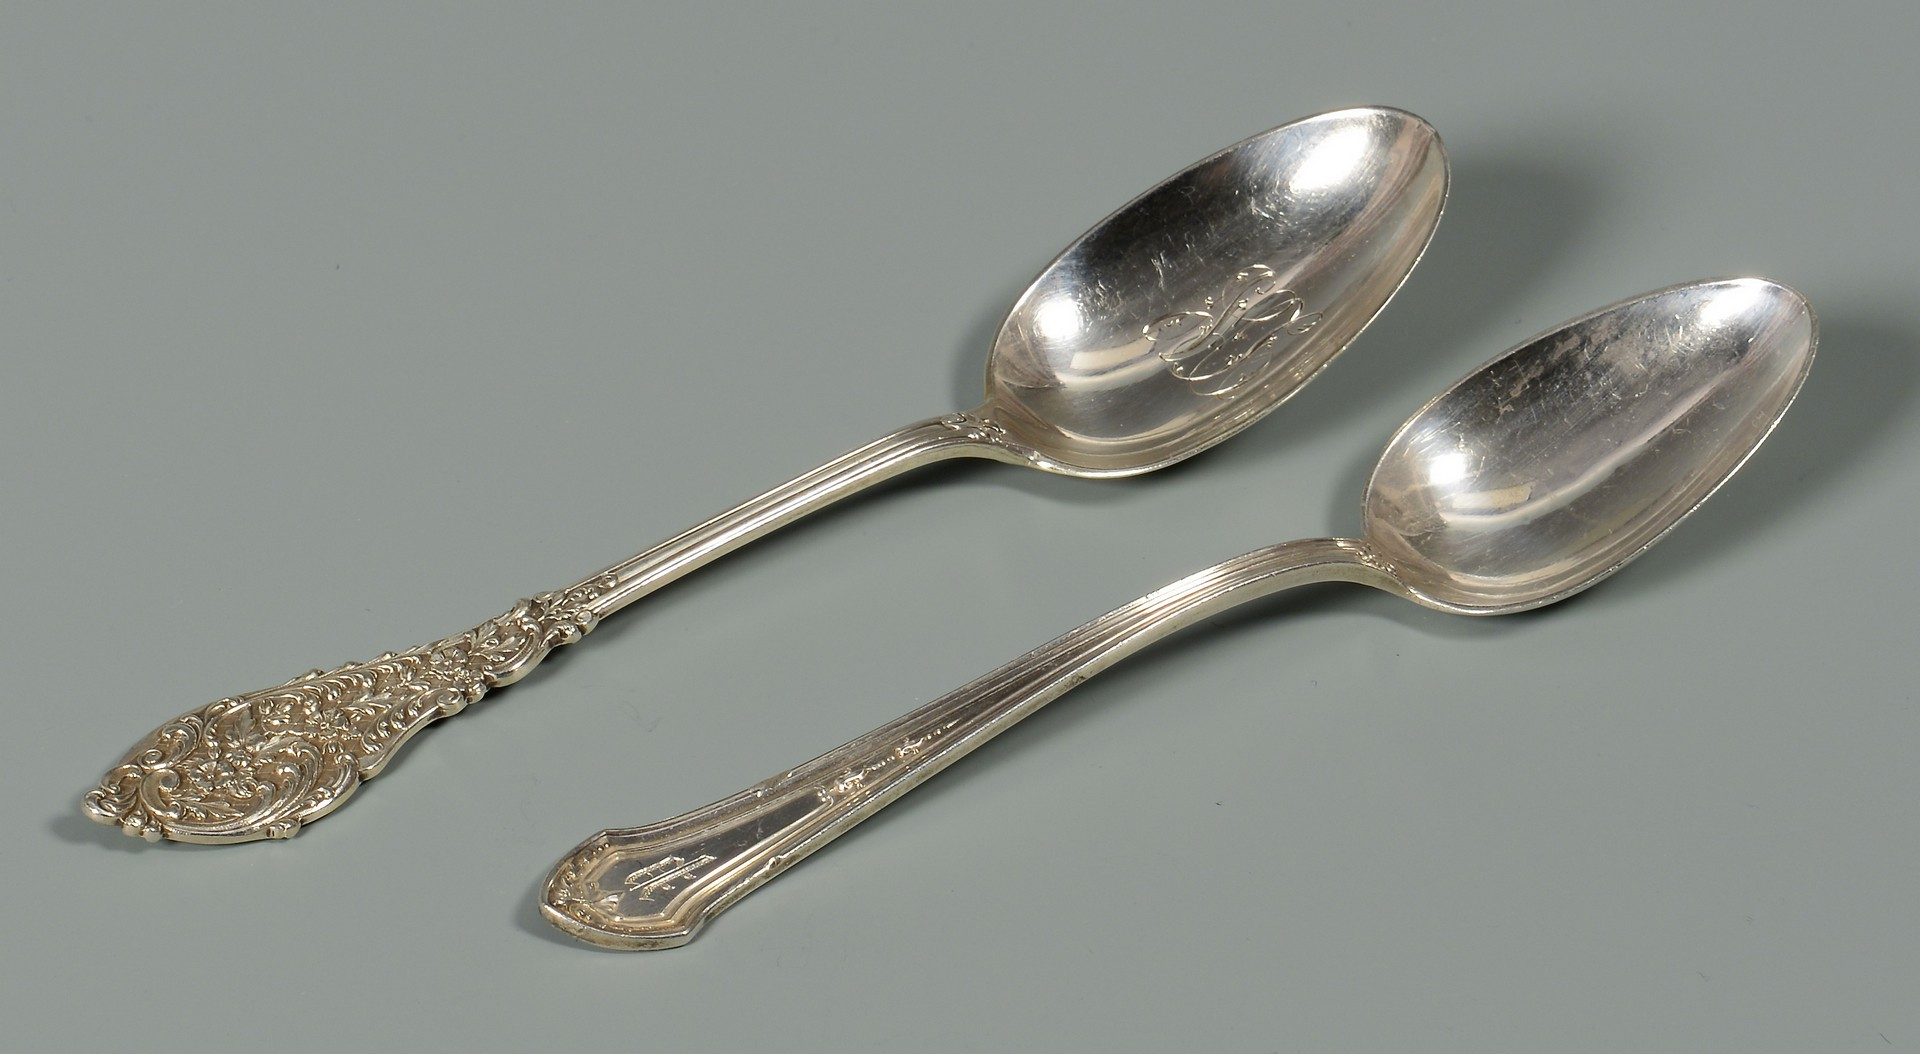 Lot 574: Misc. flatware, napkin rings and salt shakers, 44